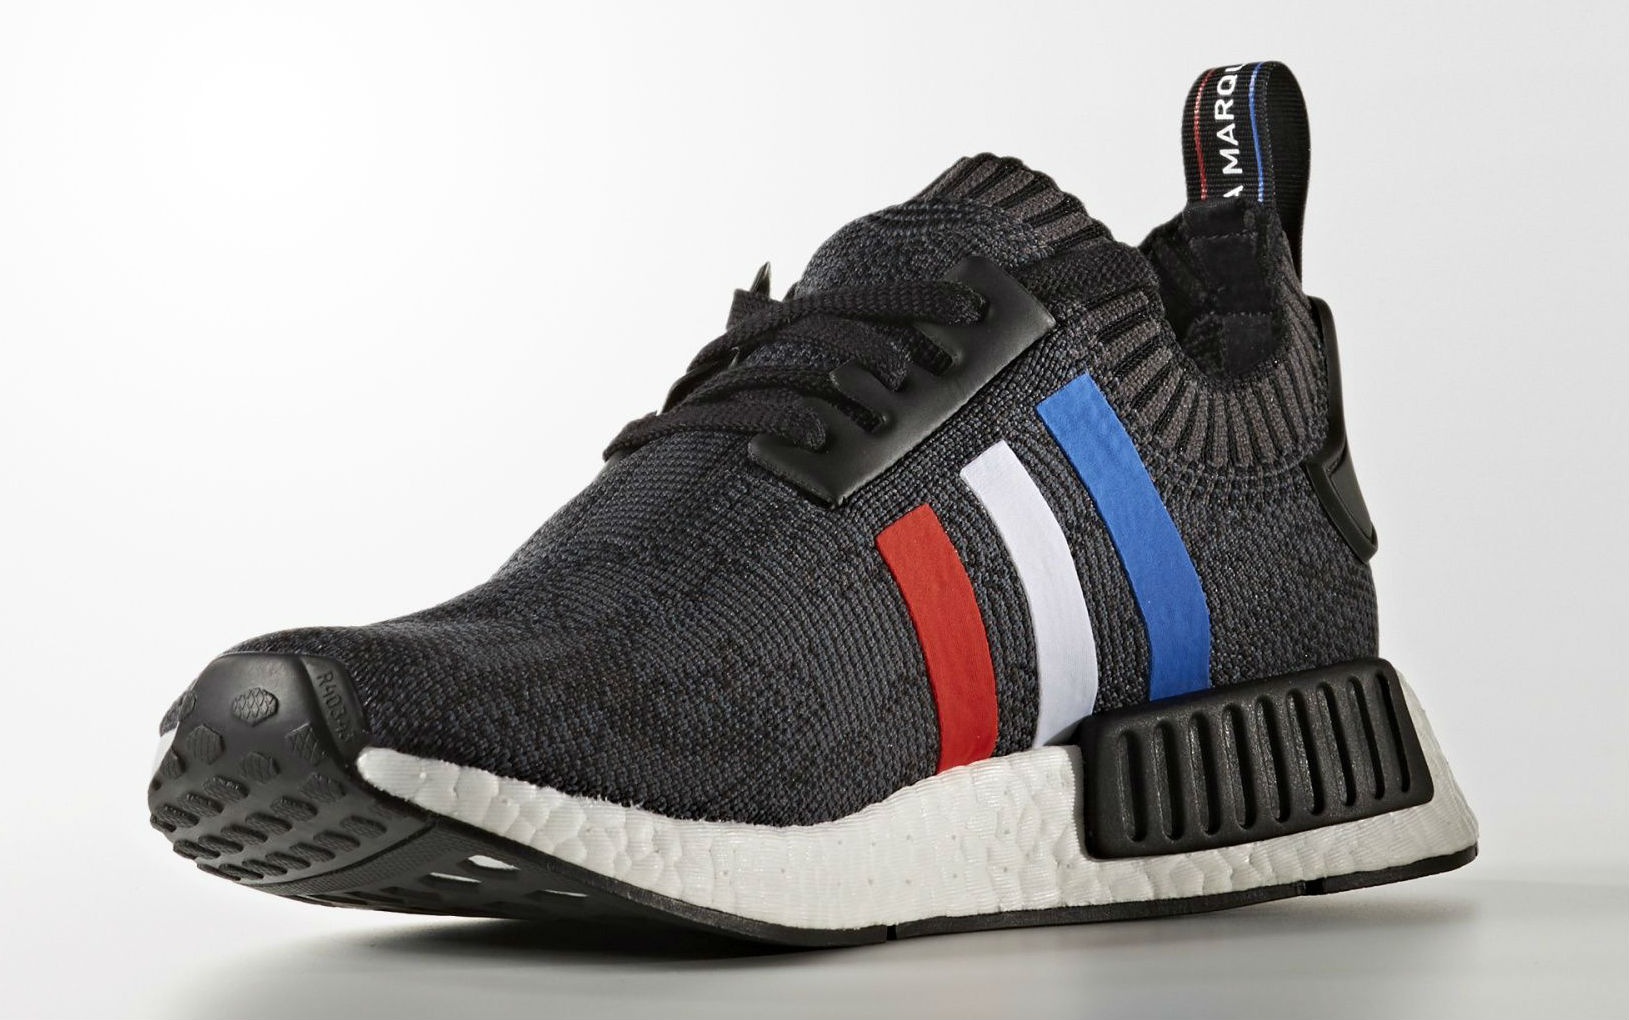 adidas-nmd-pk-black-red-white-blue-stripes-4_bqi3fo